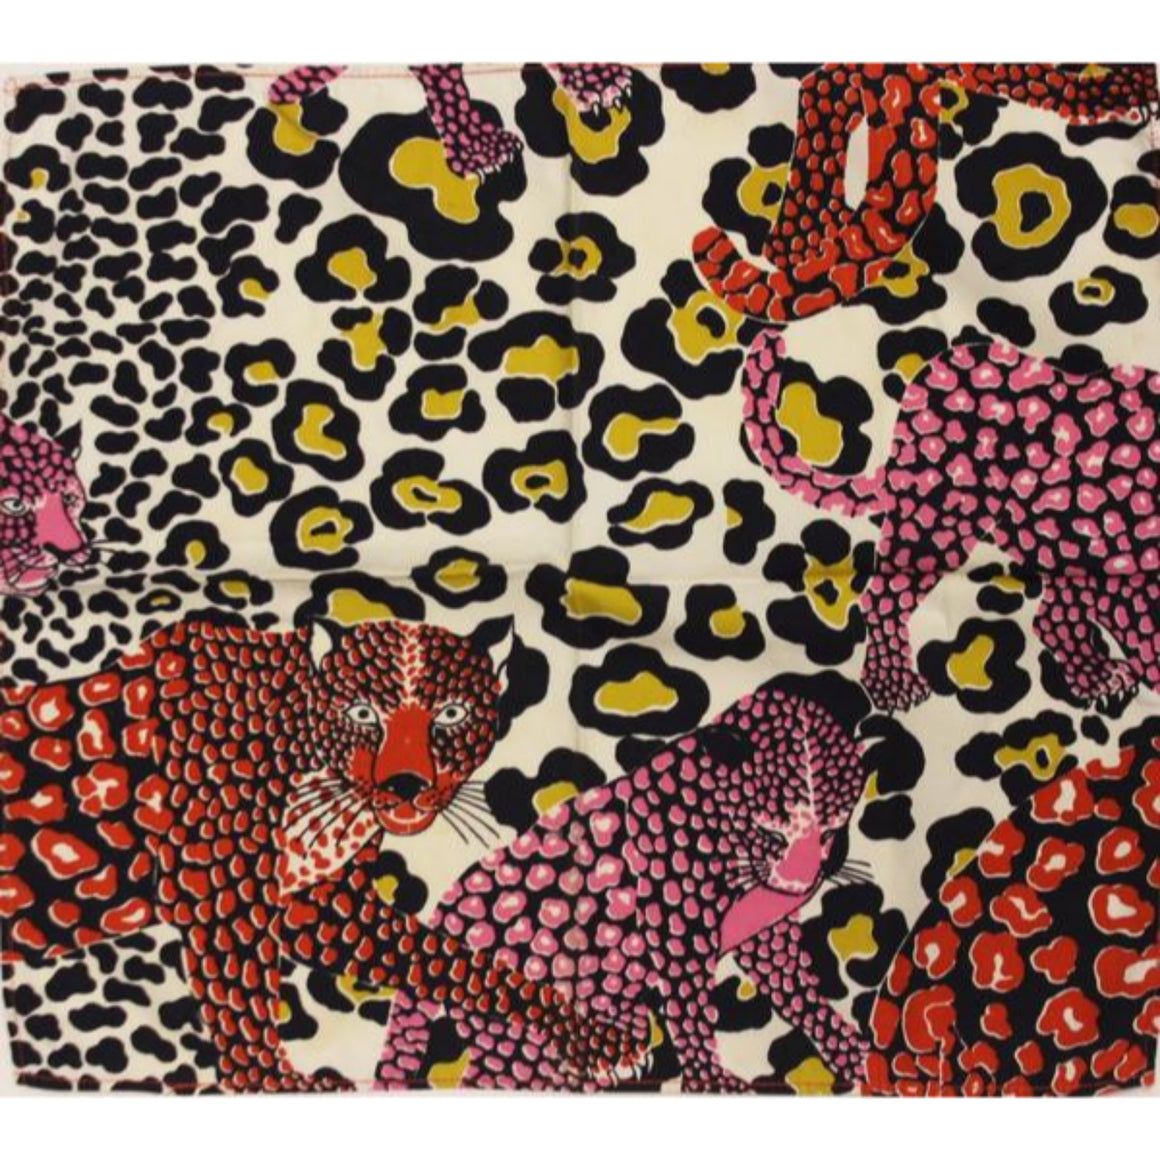 'Vintage Set of 7 'Leopard' Print Cotton Pocket Sqs'